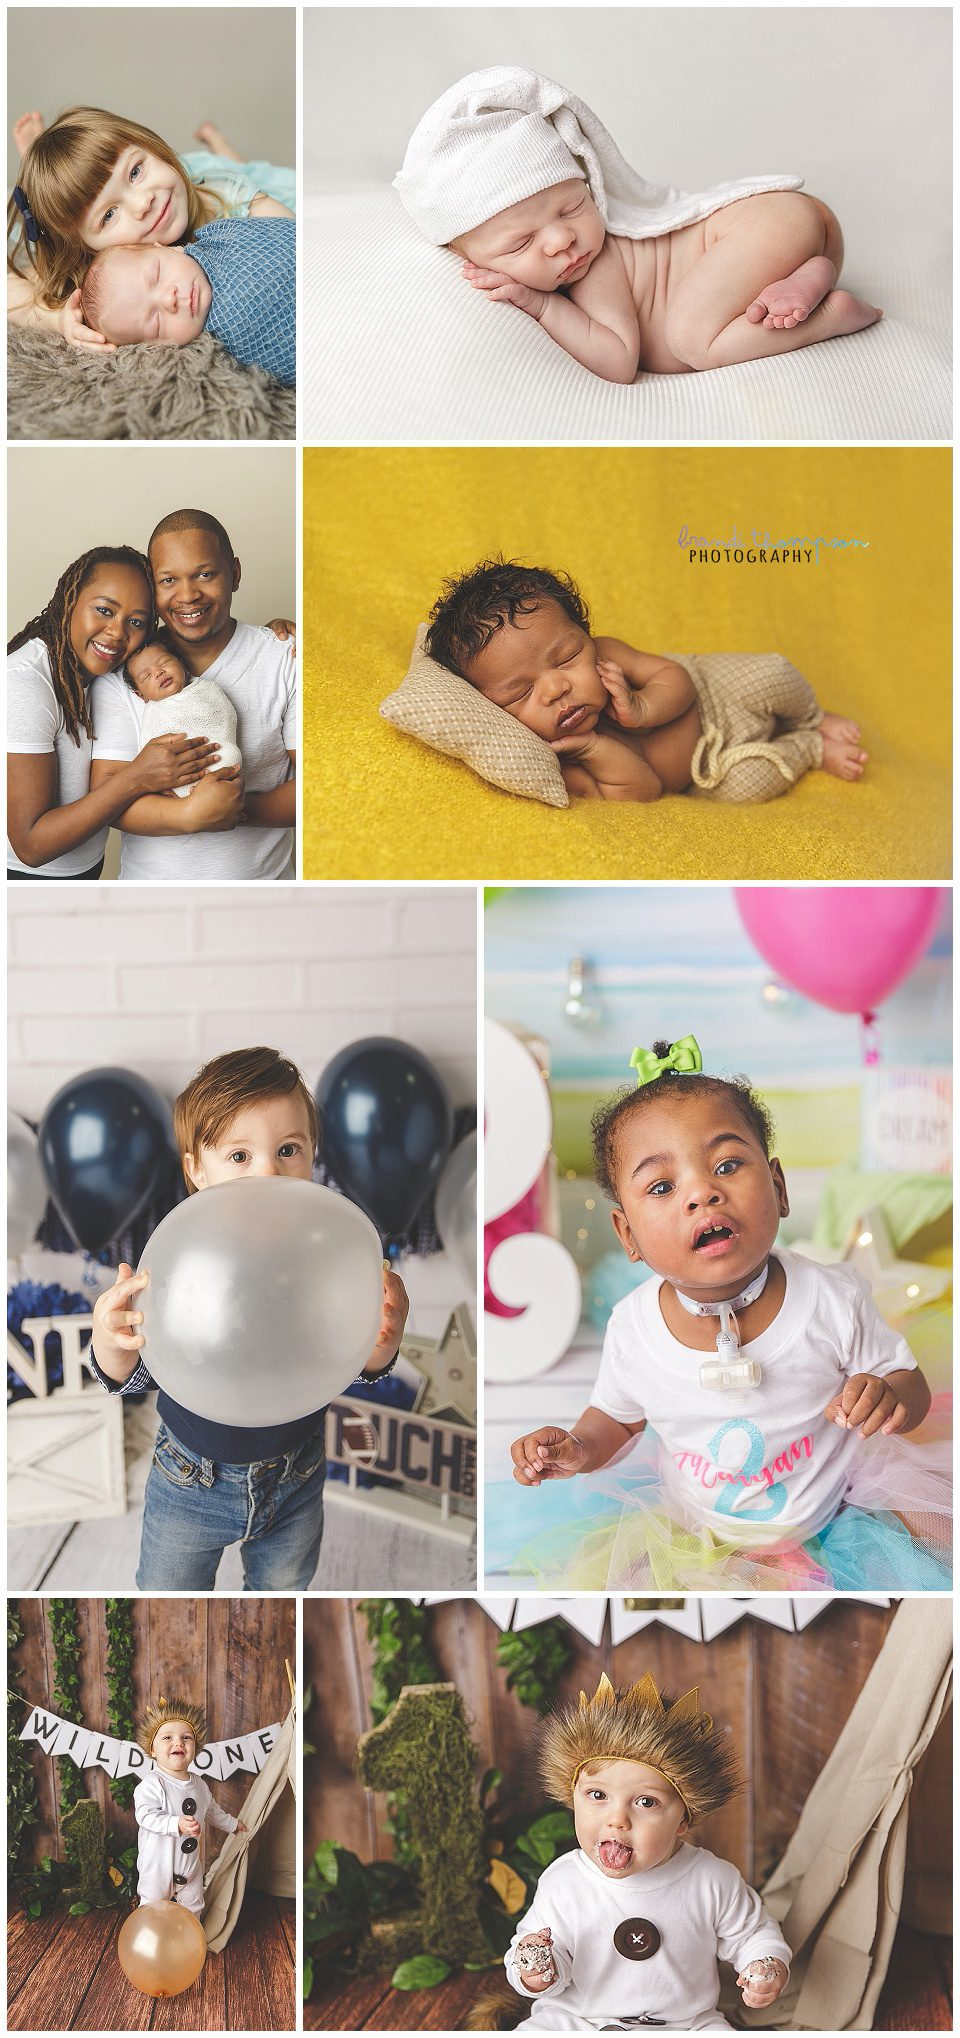 A collage of newborn, first birthday and toddler photographs